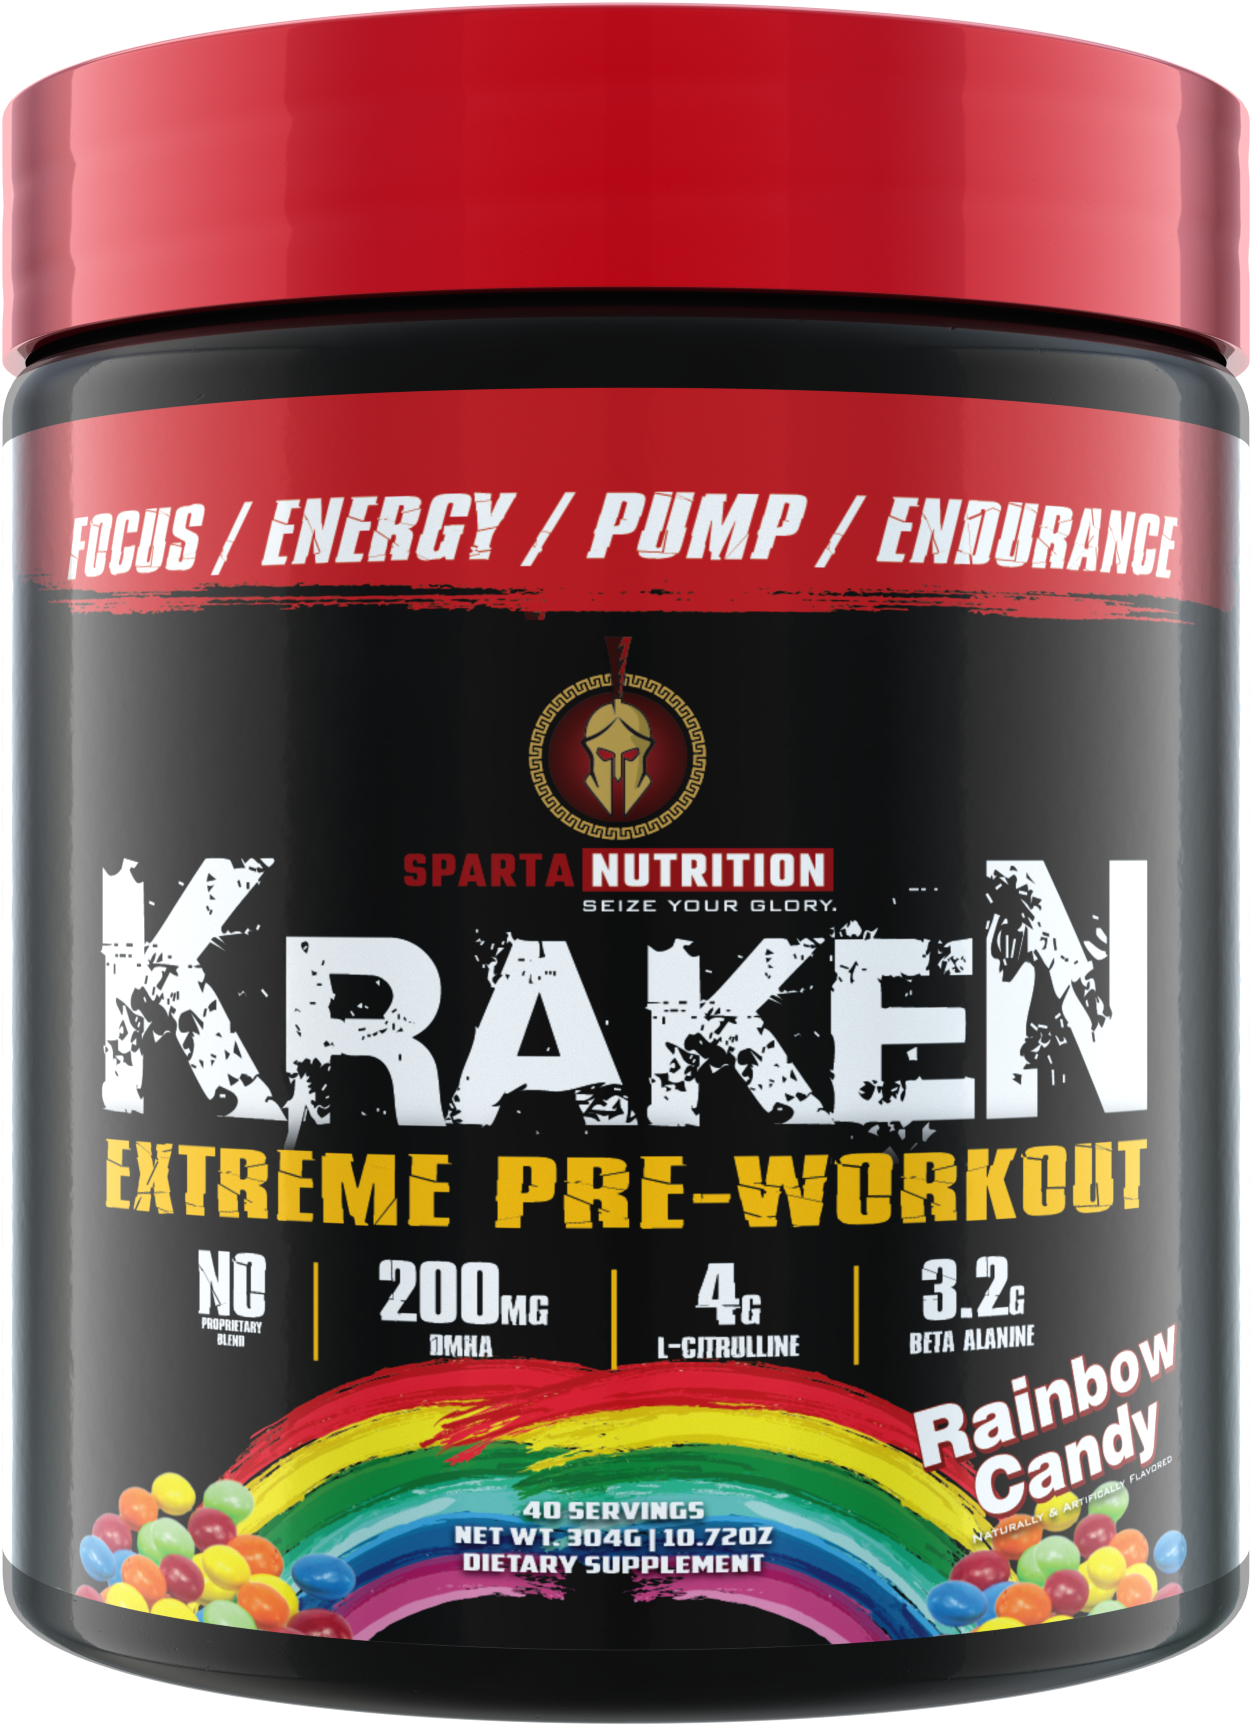 """blog pre workout San diego, calif – sports nutrition giant gnc plans to release a new pre-workout smokeless tobacco product some time in 2015, duffel blog has learned the experimental energy/nicotine product, codenamed """"tobaccosplode,"""" was designed for the warrior/athlete market niche that pervades the."""